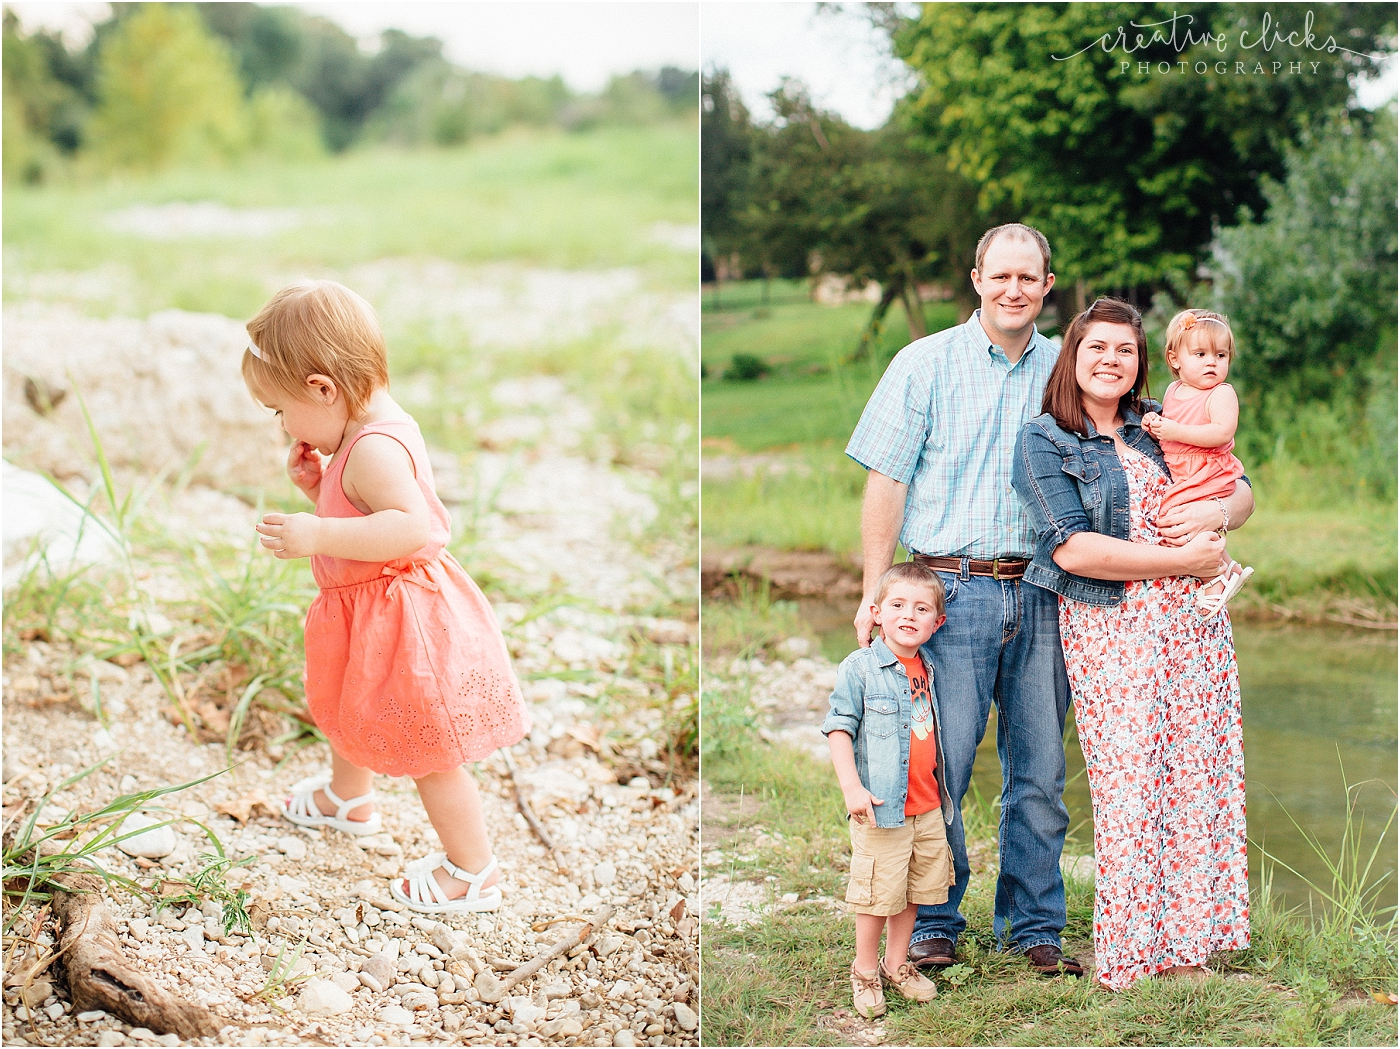 Salado_Creek_Outdoor_Family_Session_30